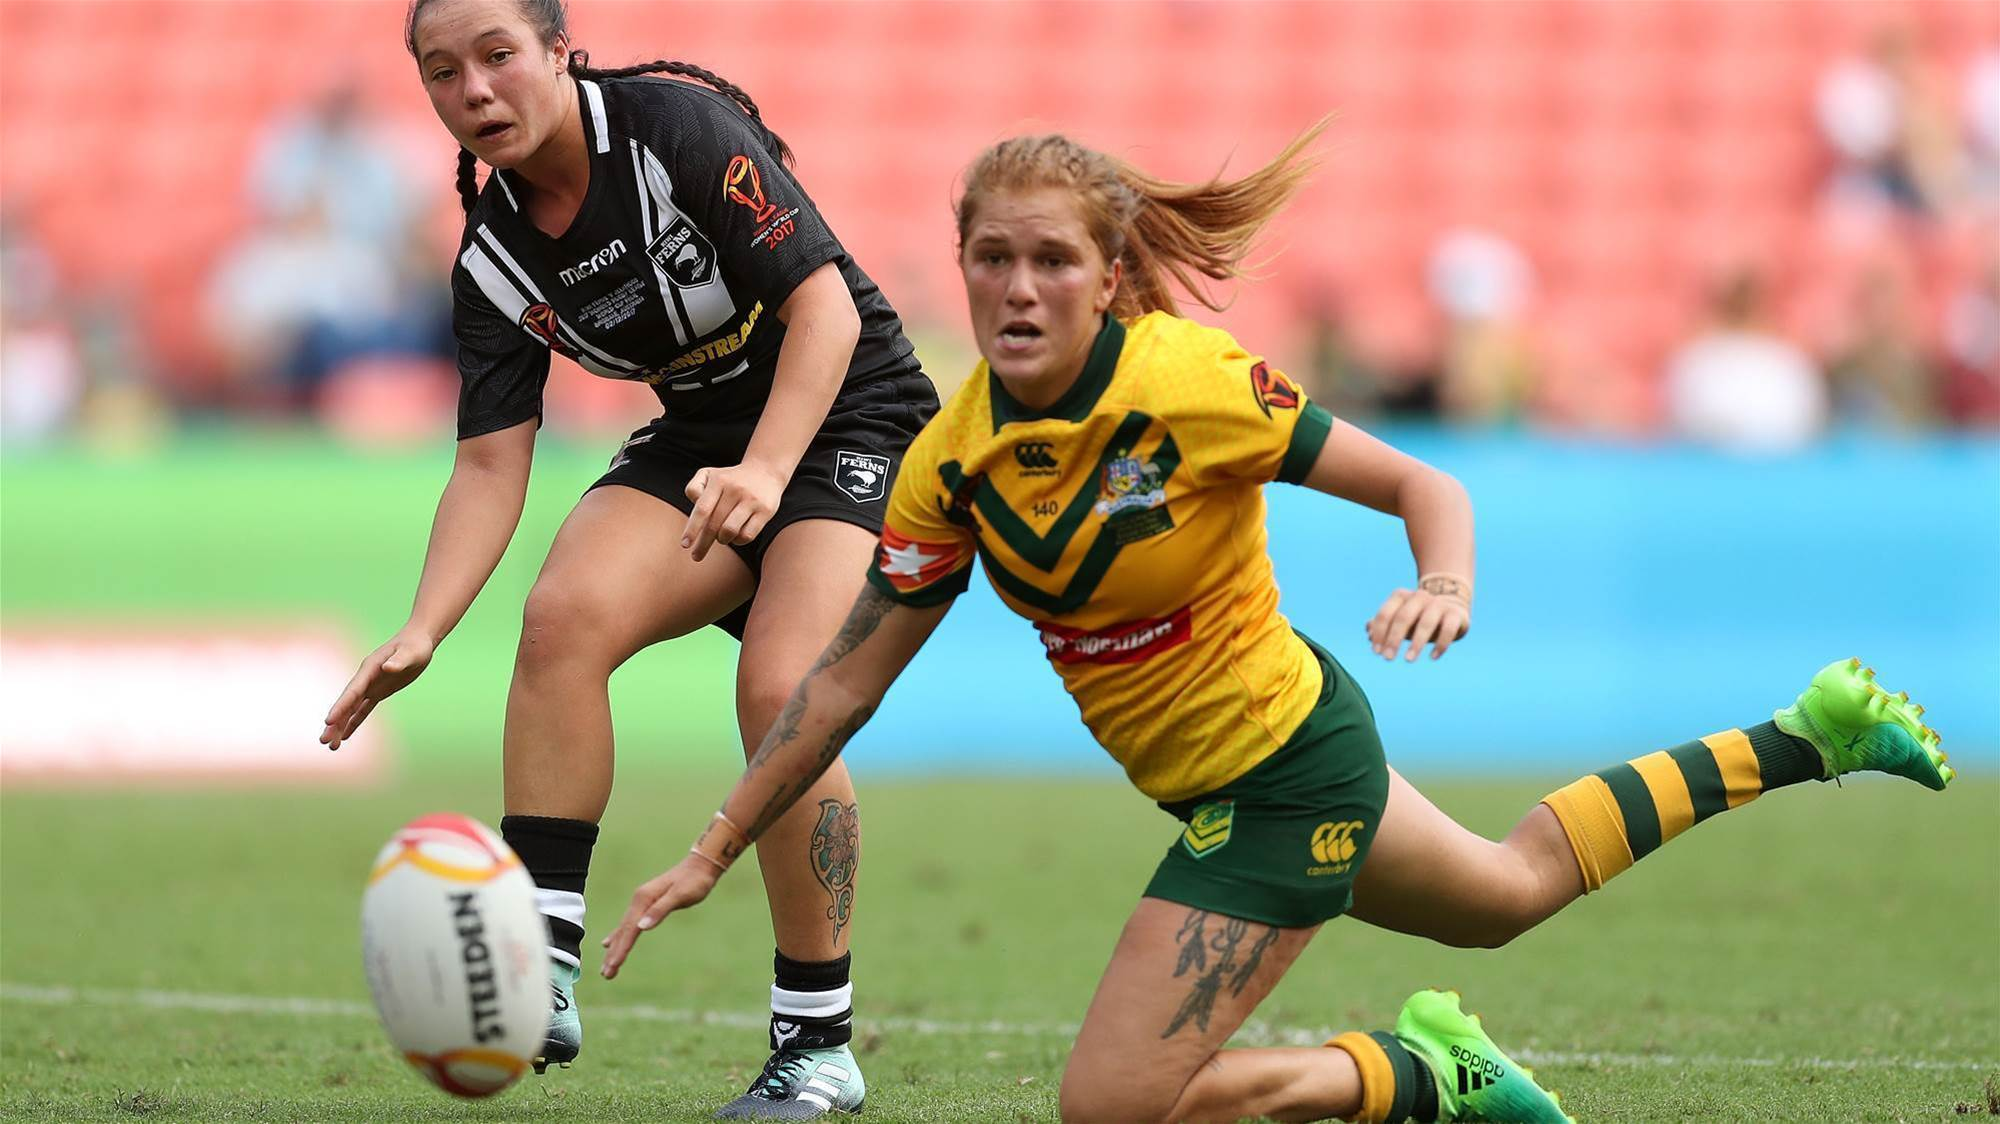 Jillaroo Caitlin Moran suffers knee injury